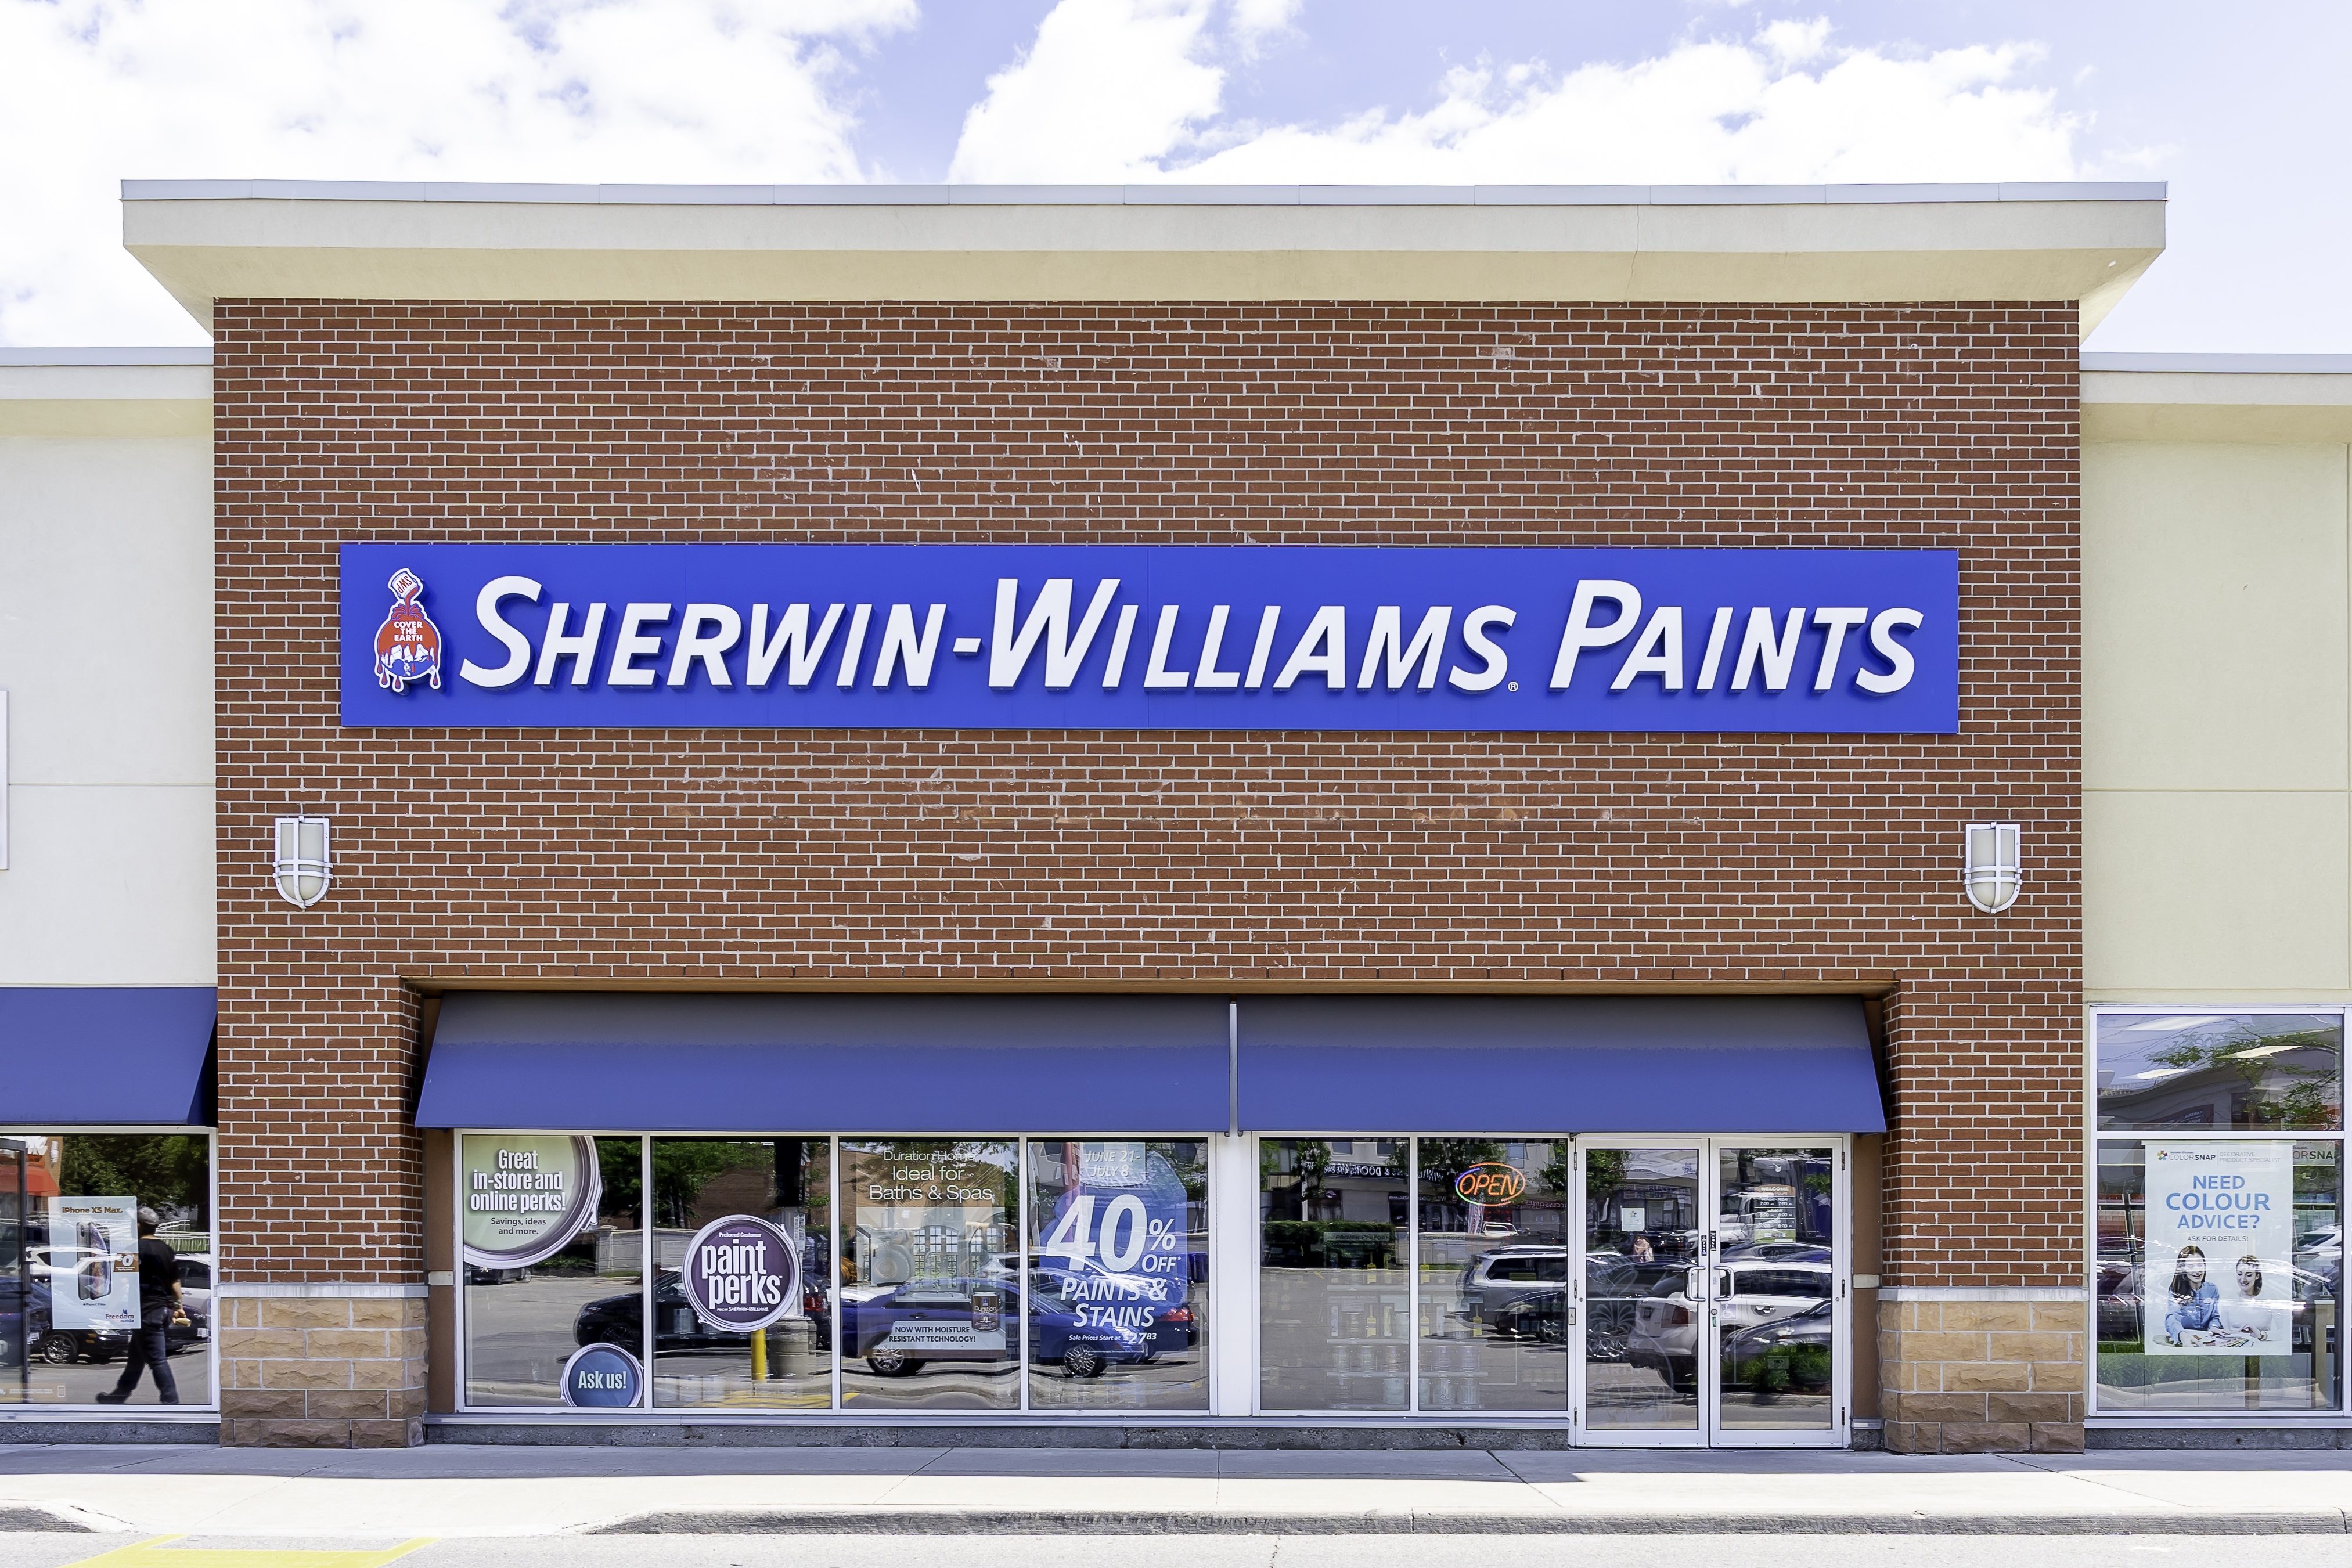 Toronto, Canada - June 22, 2019: Sherwin-Williams Paint Store storefront in Toronto. Sherwin-Williams is an American company that produces paint.